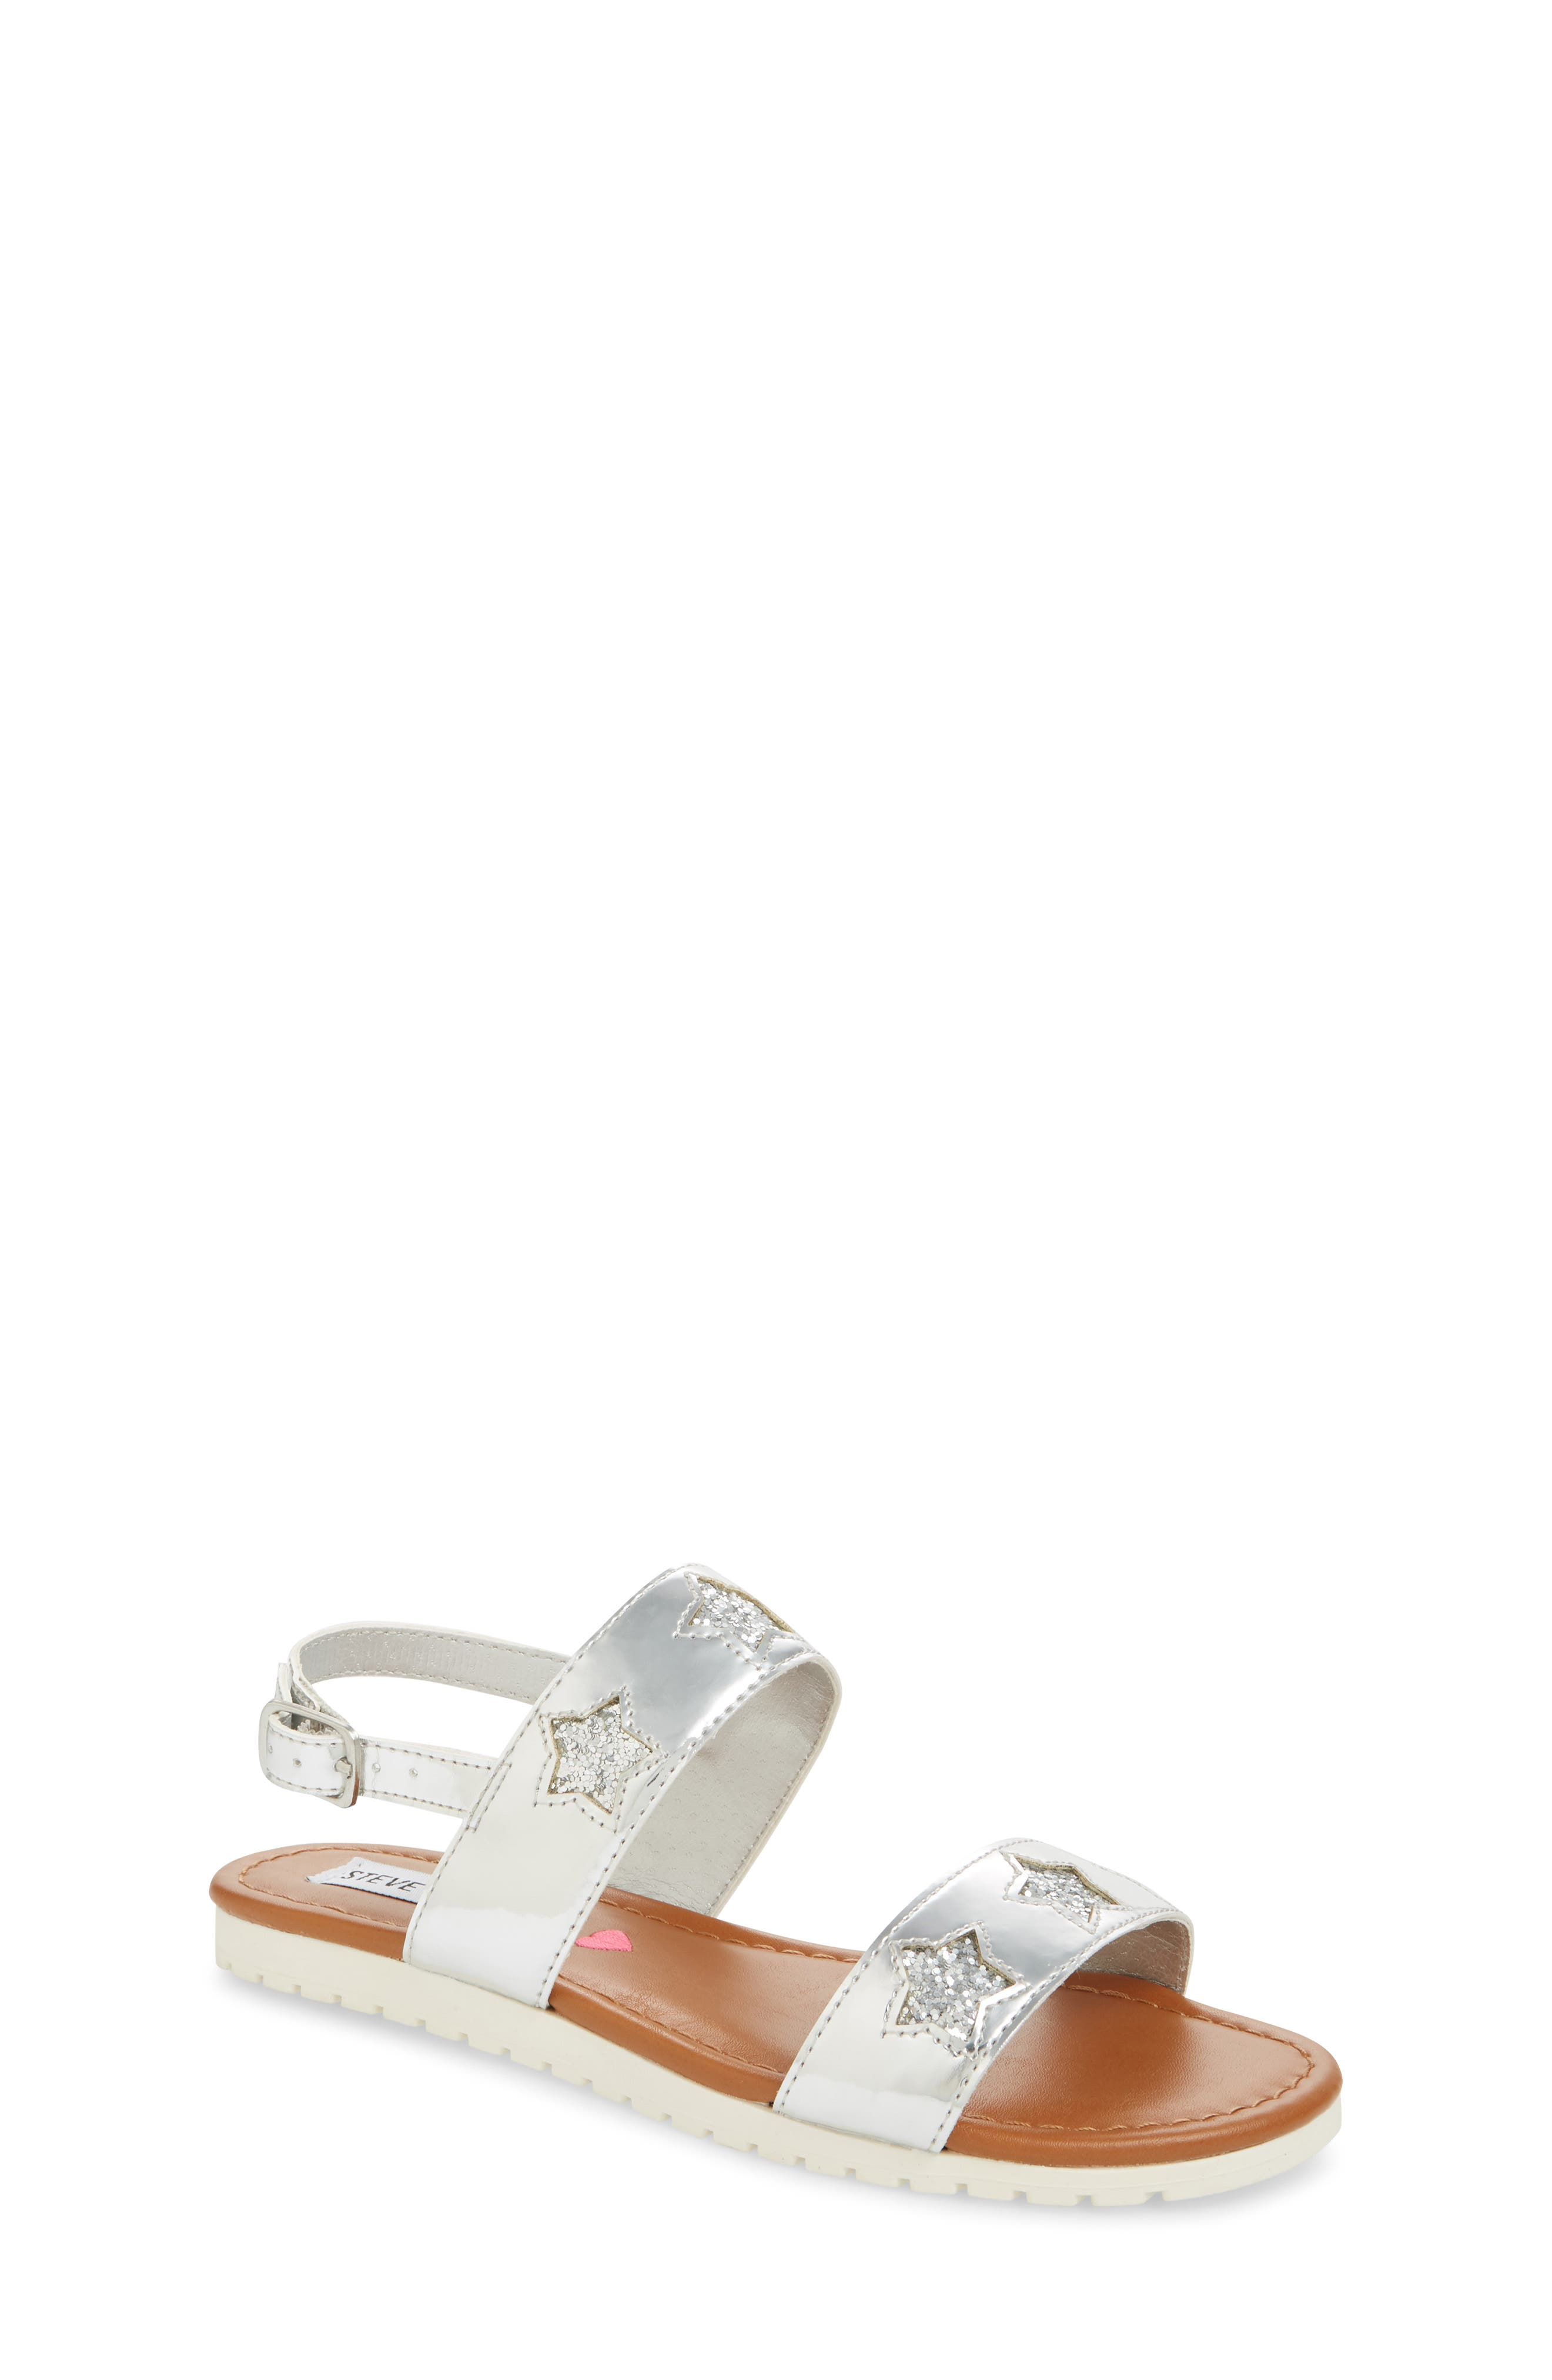 Adventure Glitter Sandal,                             Main thumbnail 1, color,                             SILVER